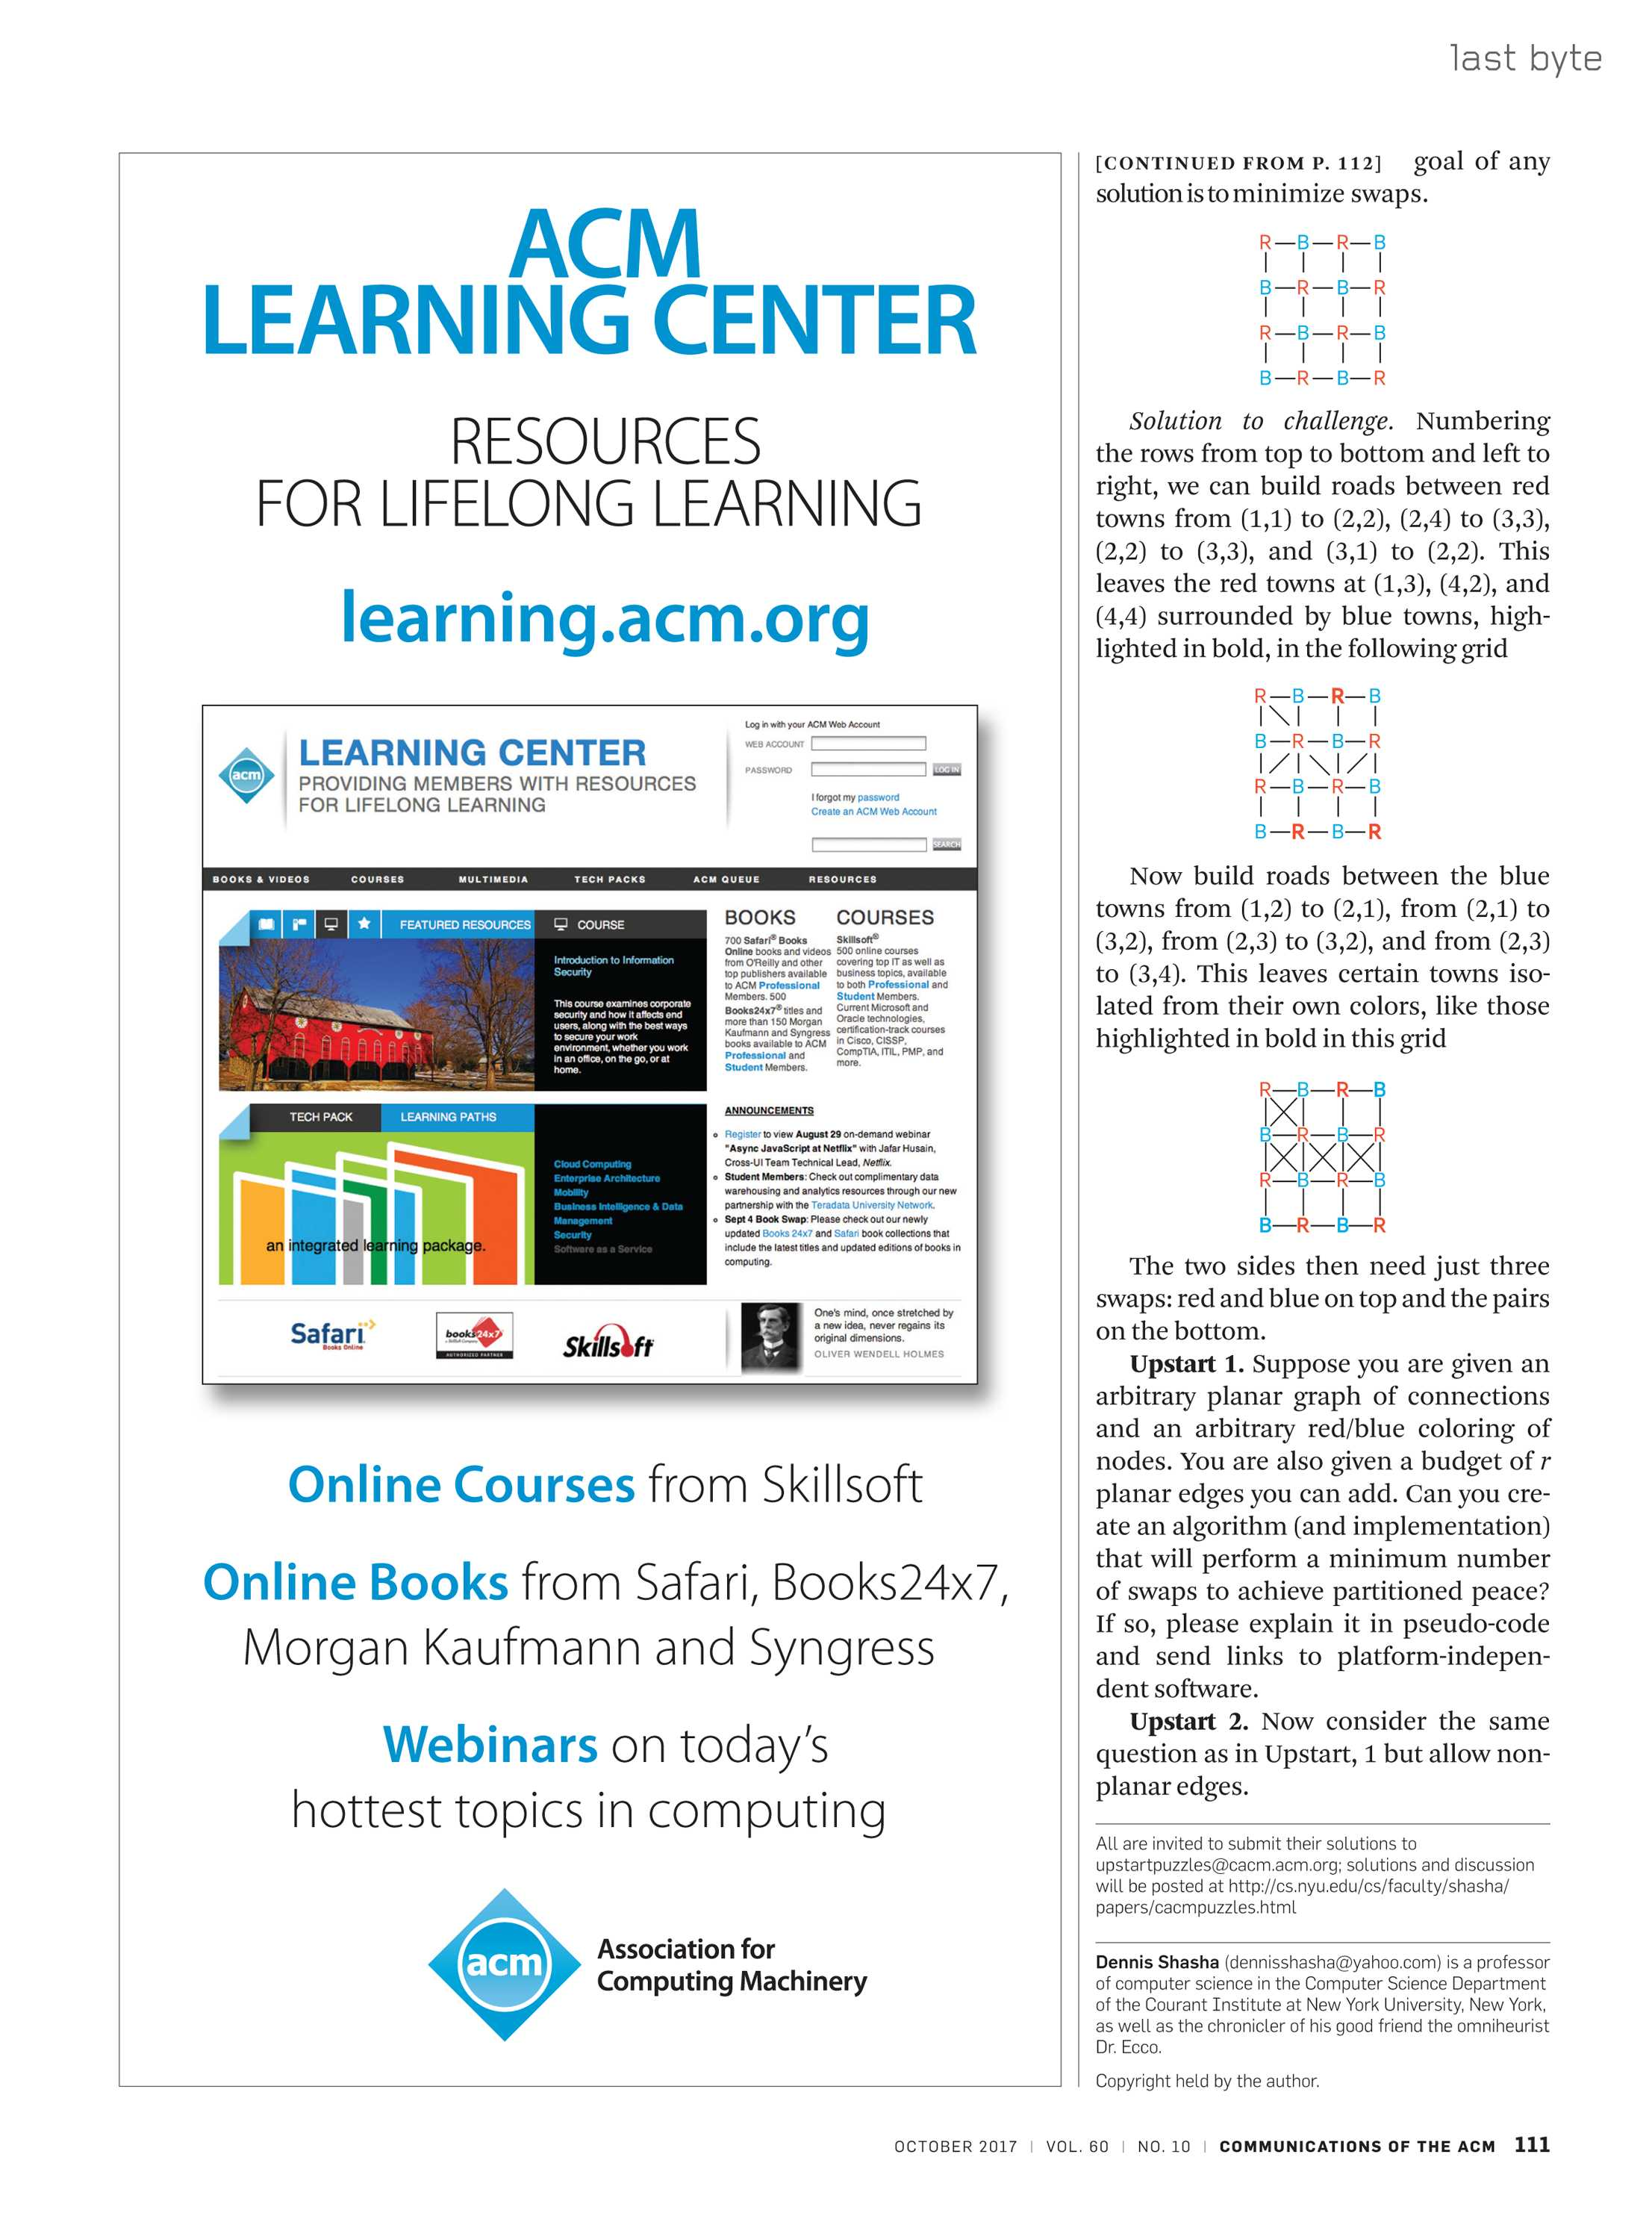 Communications of the ACM - October 2017 - page 111